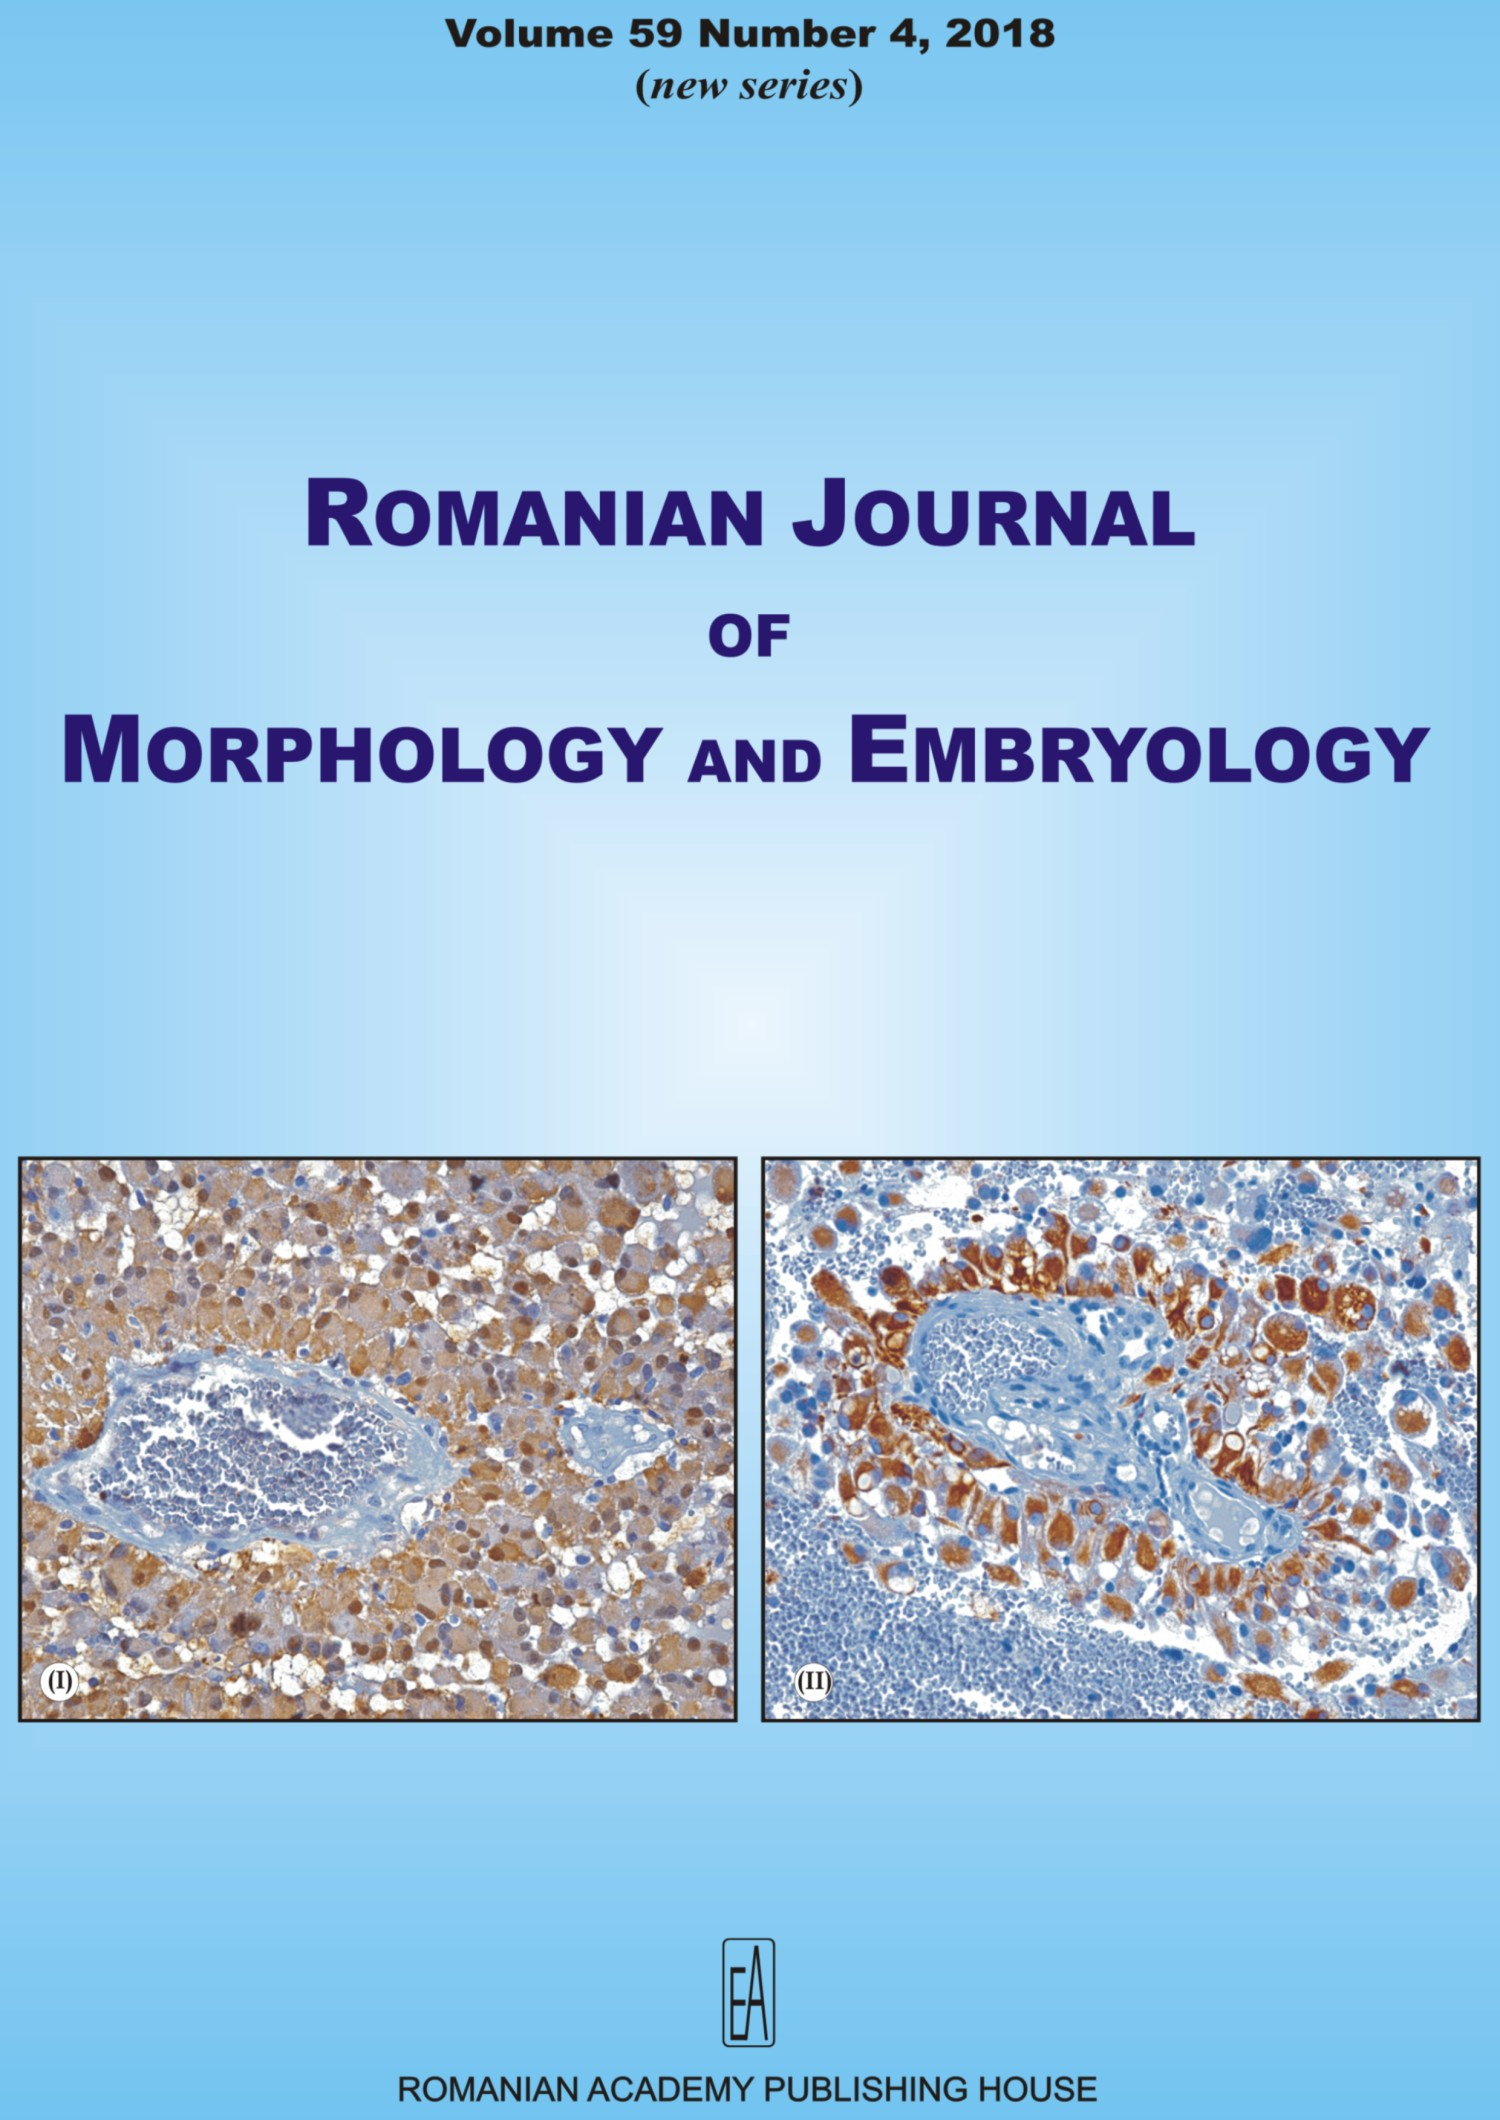 Romanian Journal of Morphology and Embryology, vol. 59 no. 4, 2018